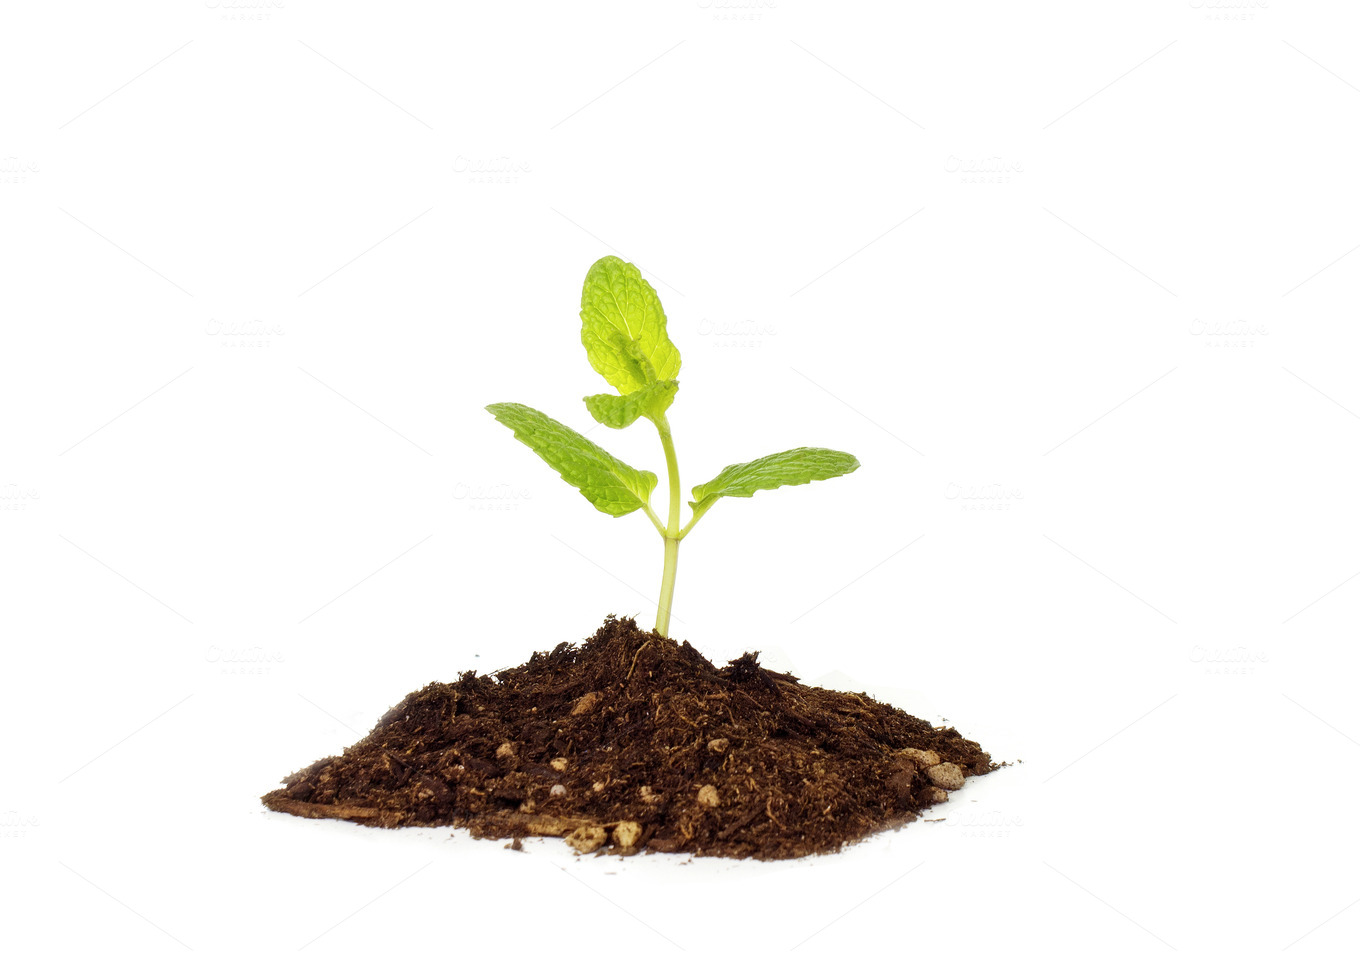 Tiny baby plant birth grow concept ~ Business Photos on Creative